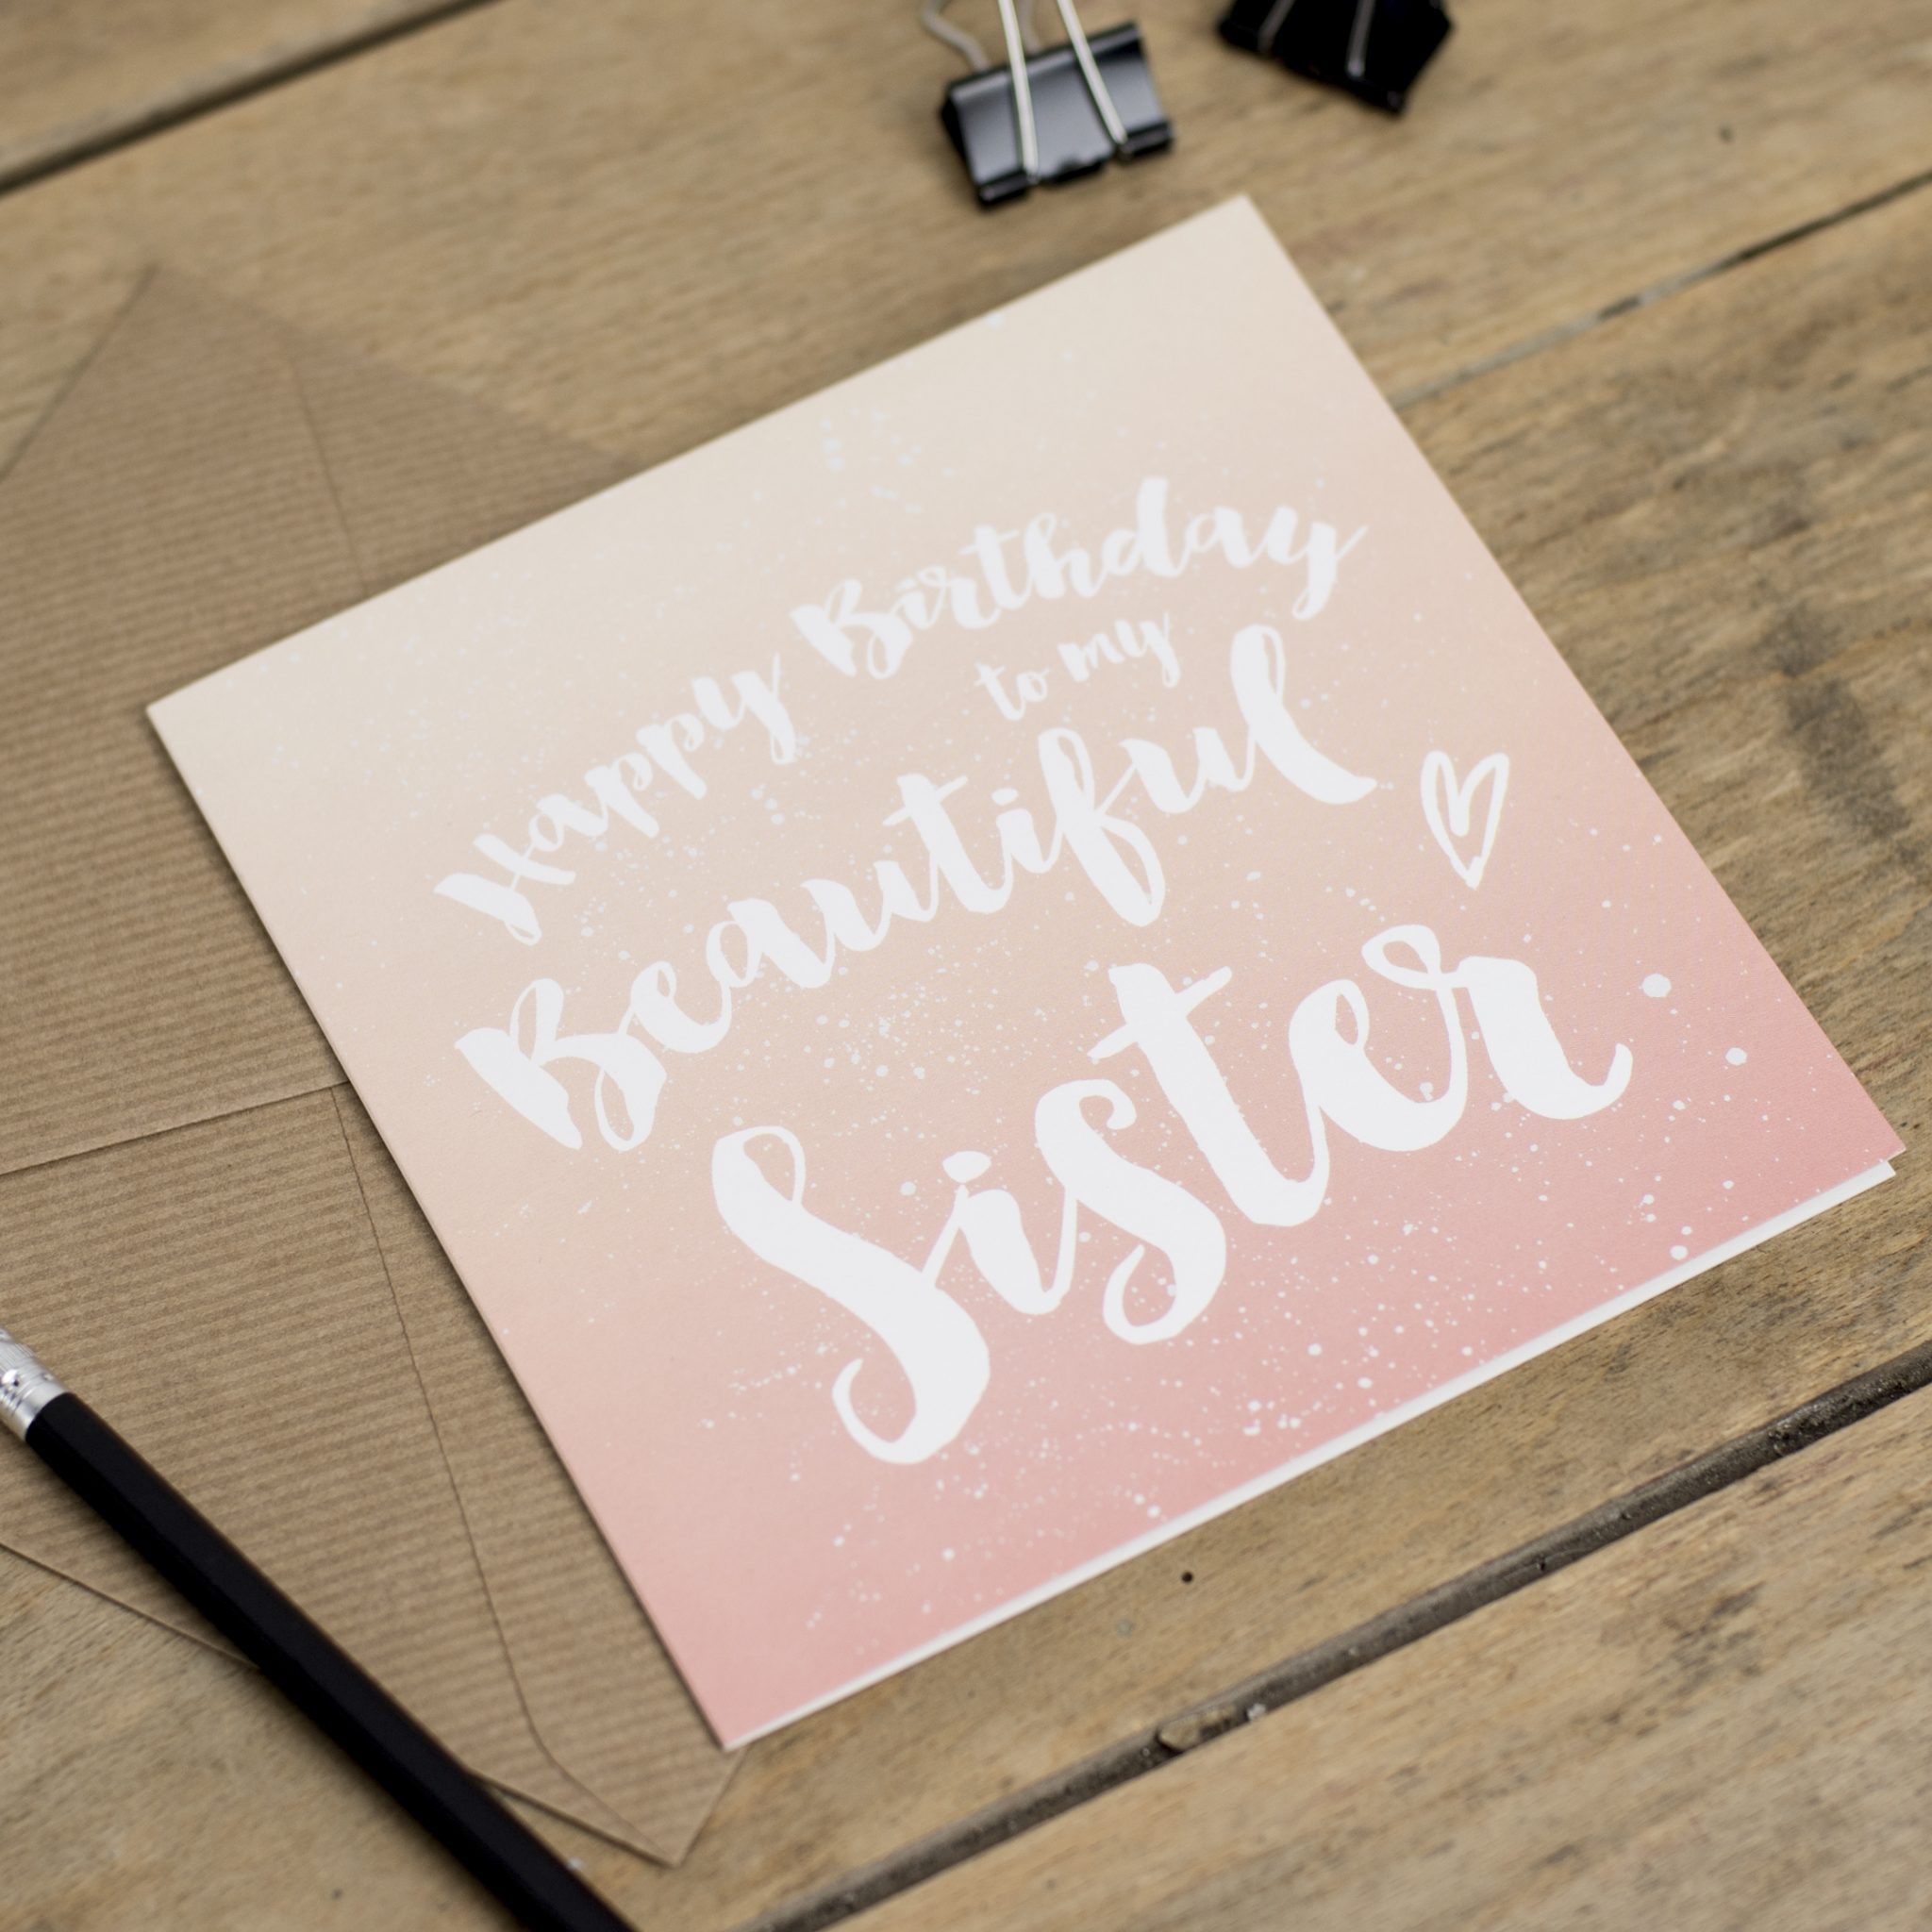 Happy Birthday Beautiful Sister Greeting Card